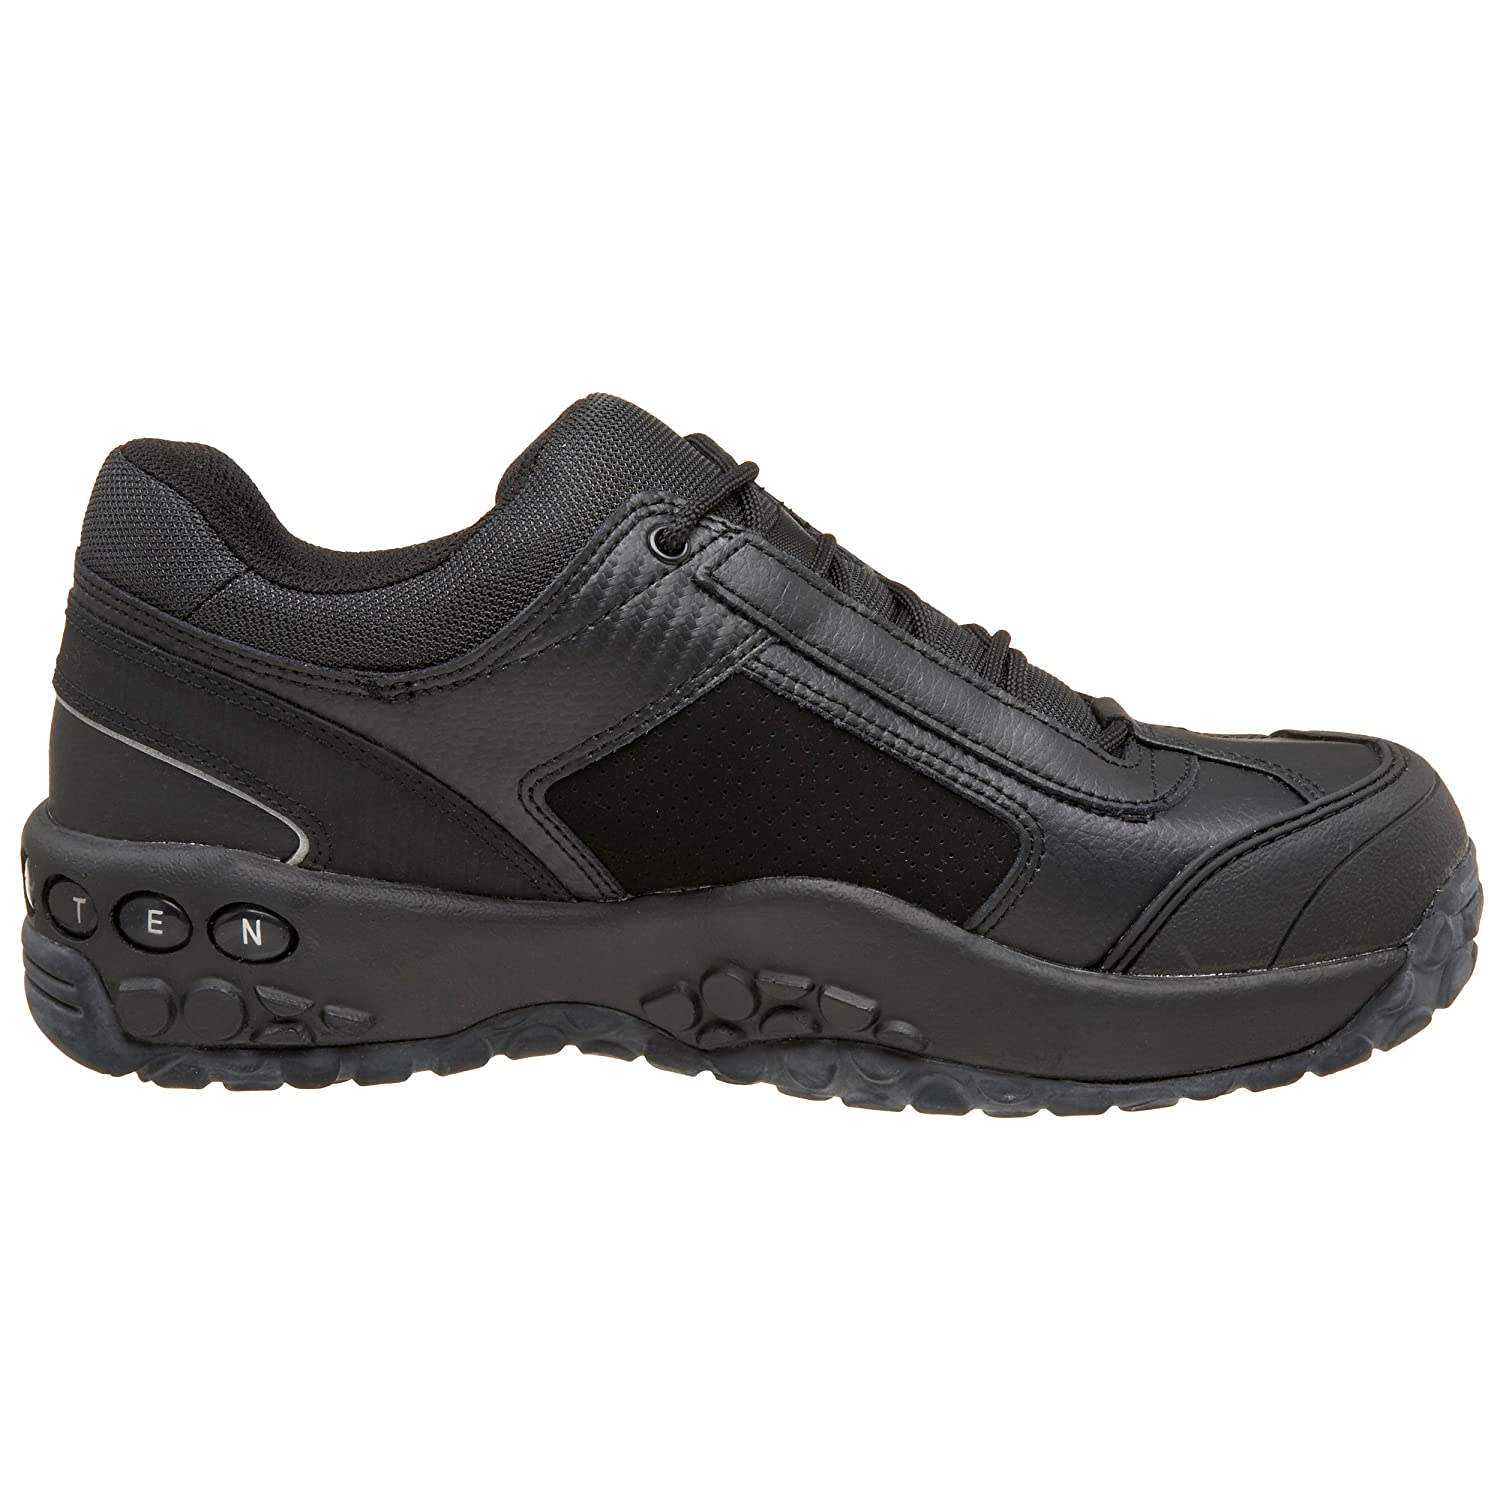 Five Ten - Zapatillas de ciclismo para hombre, color negro, talla 41: Amazon.es: Zapatos y complementos